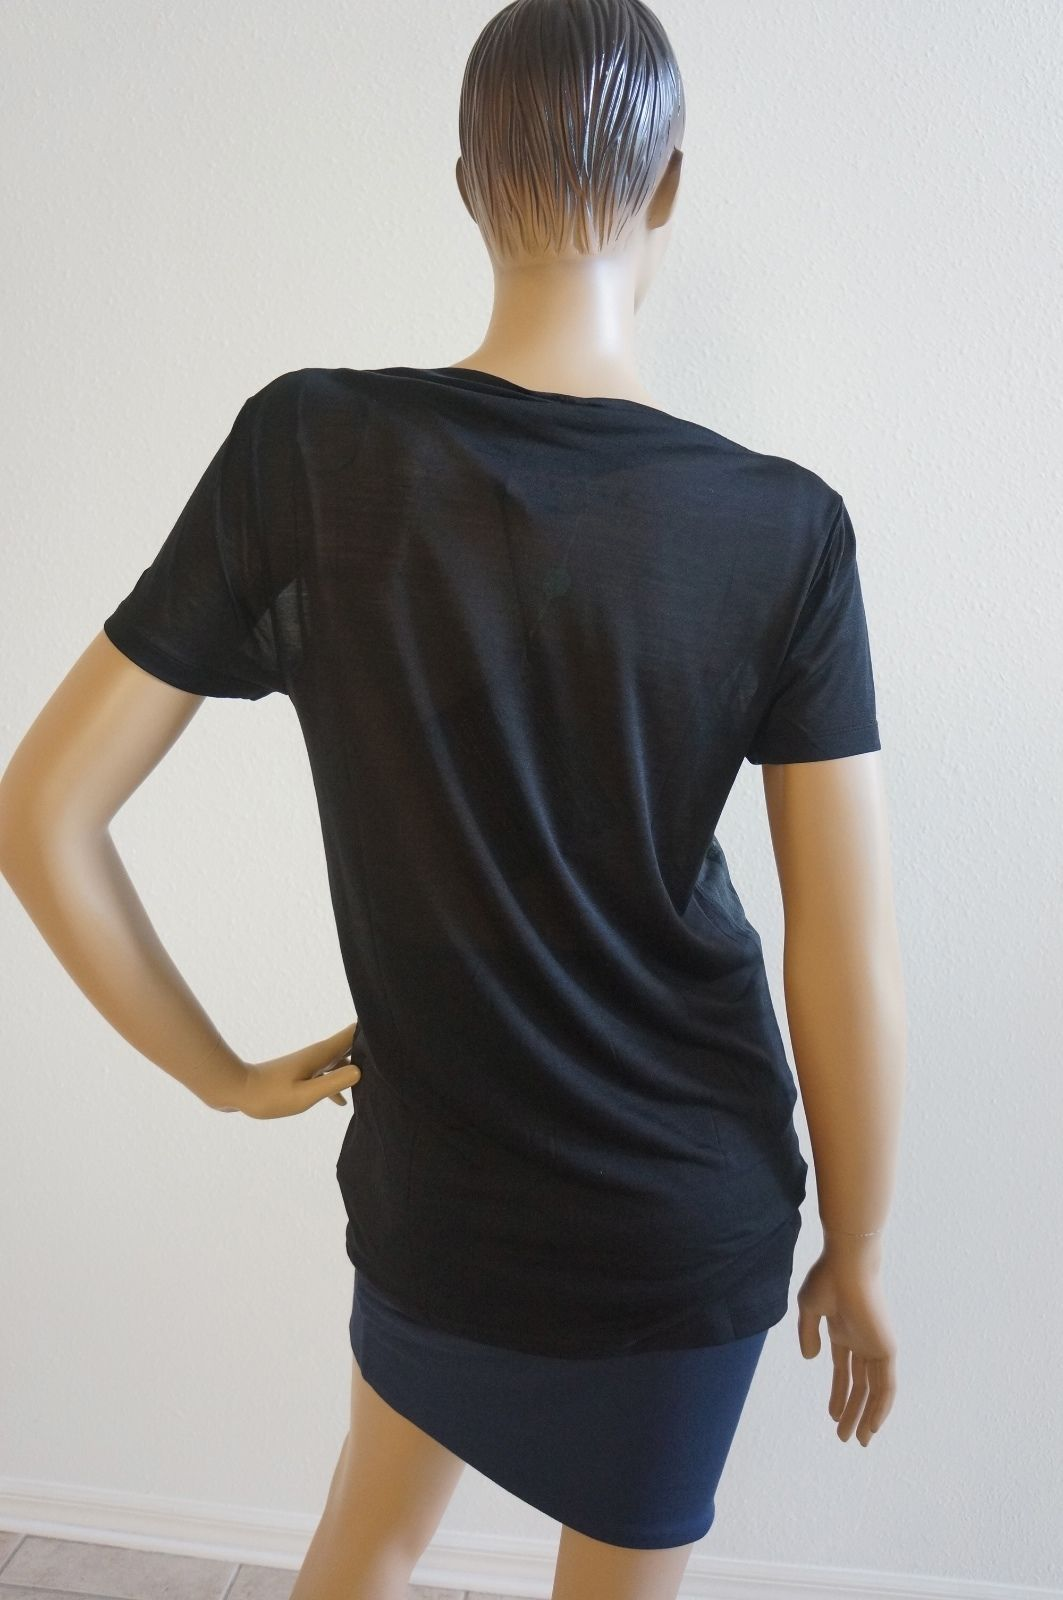 NEW Diesel Black Gold Black 100% Silk Top T-shirt Sz L